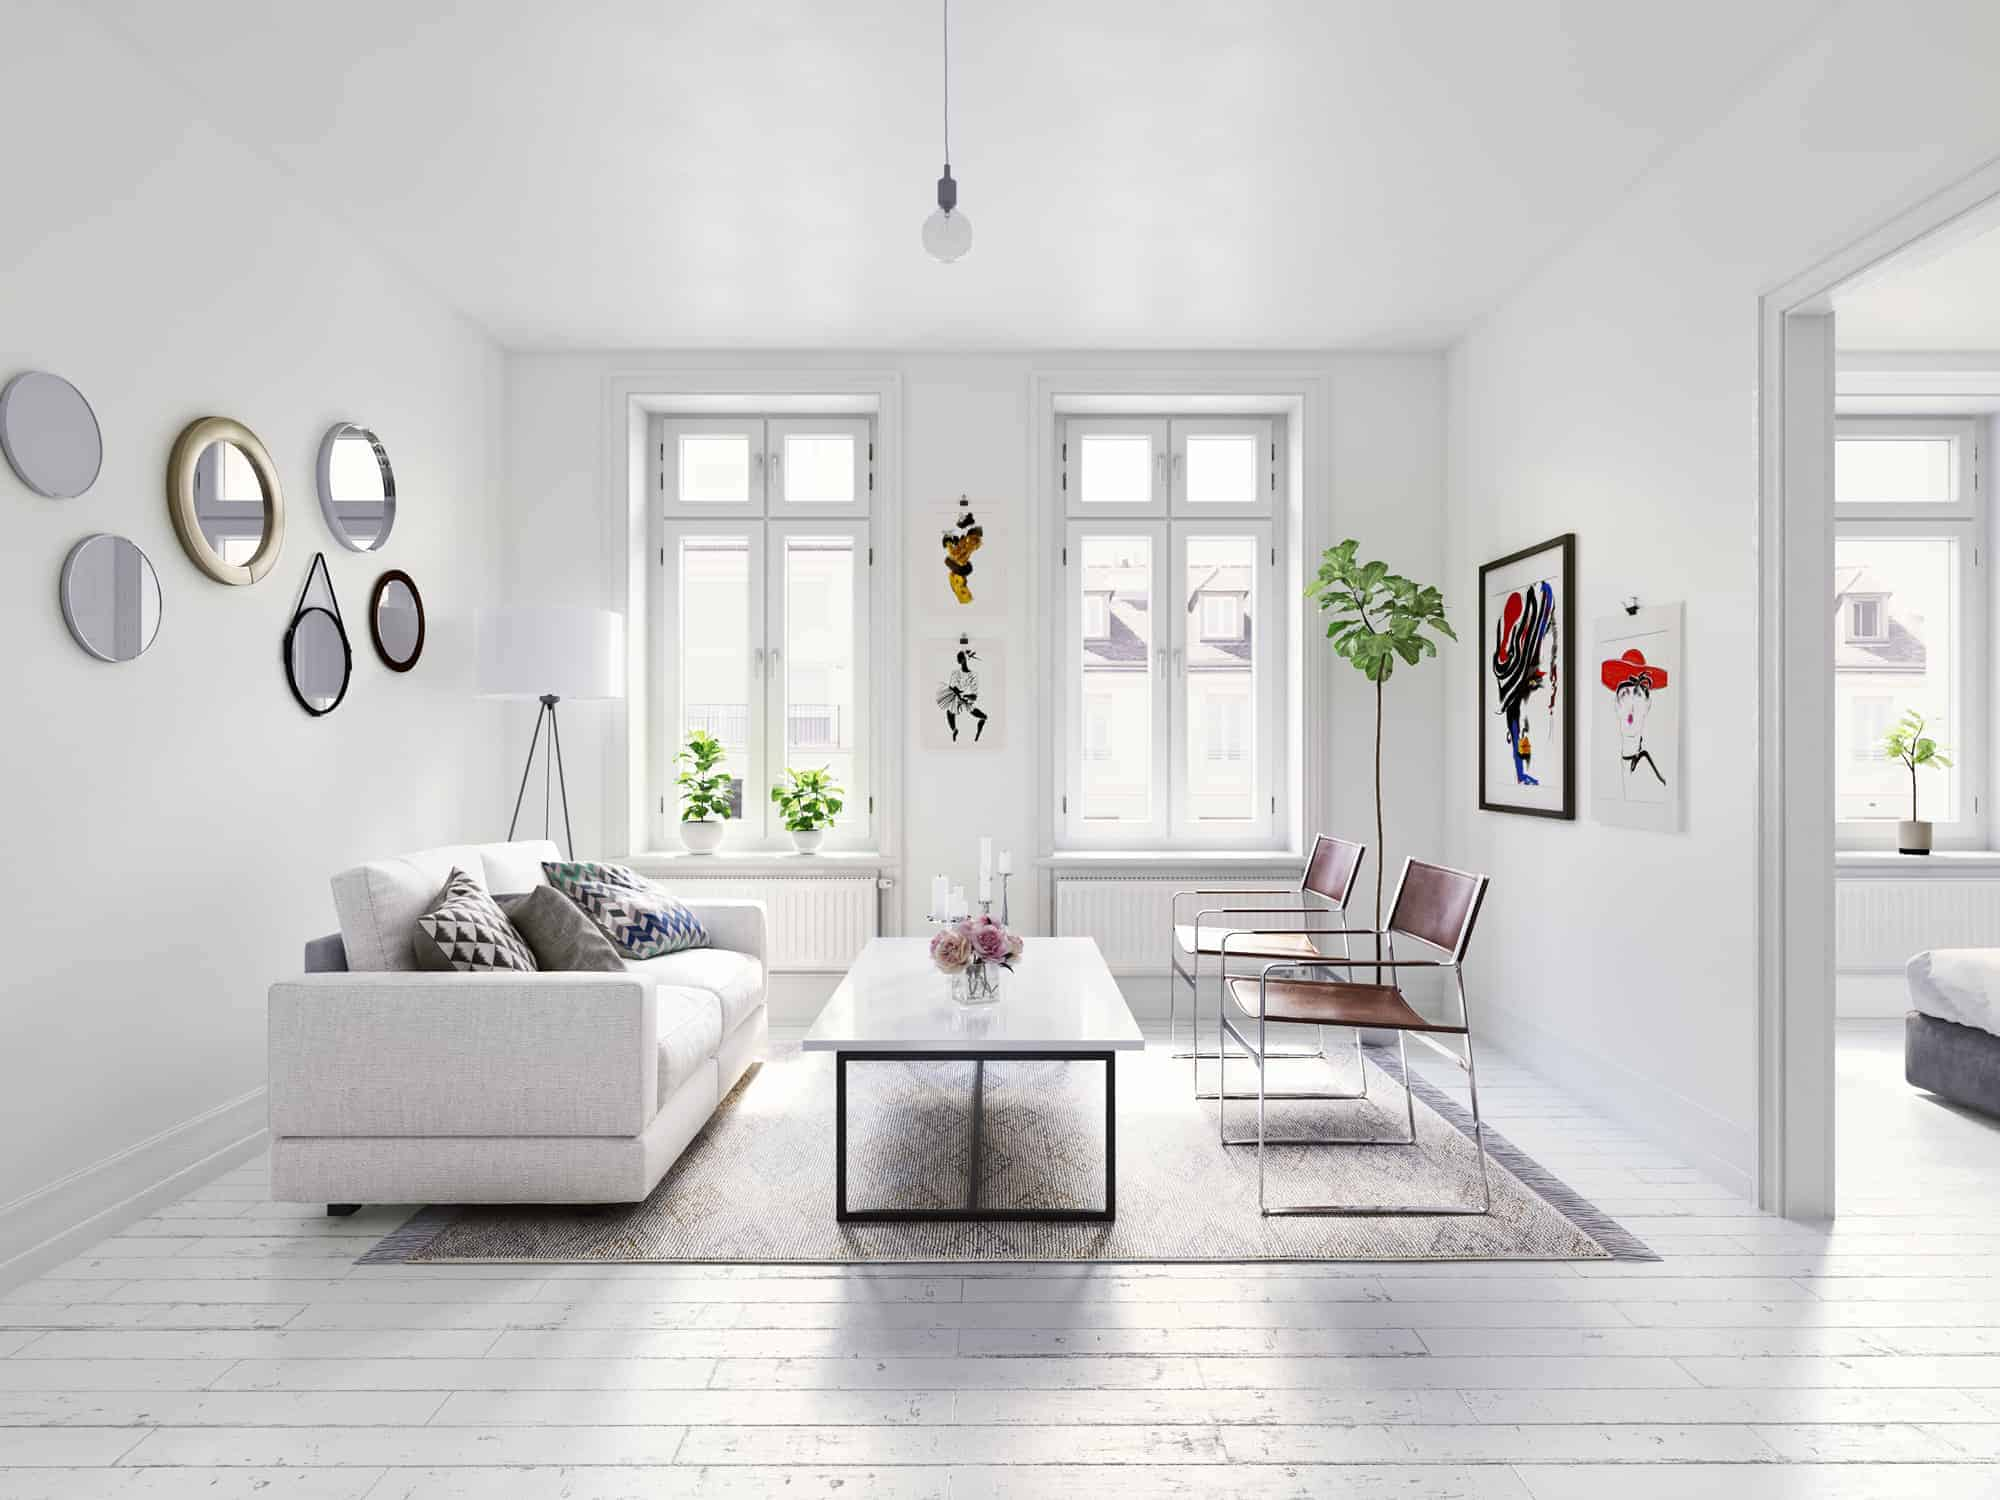 People Usually Like The White Color And Simplicity In Interior Scandinavian Is Very Popular Style Nowadays